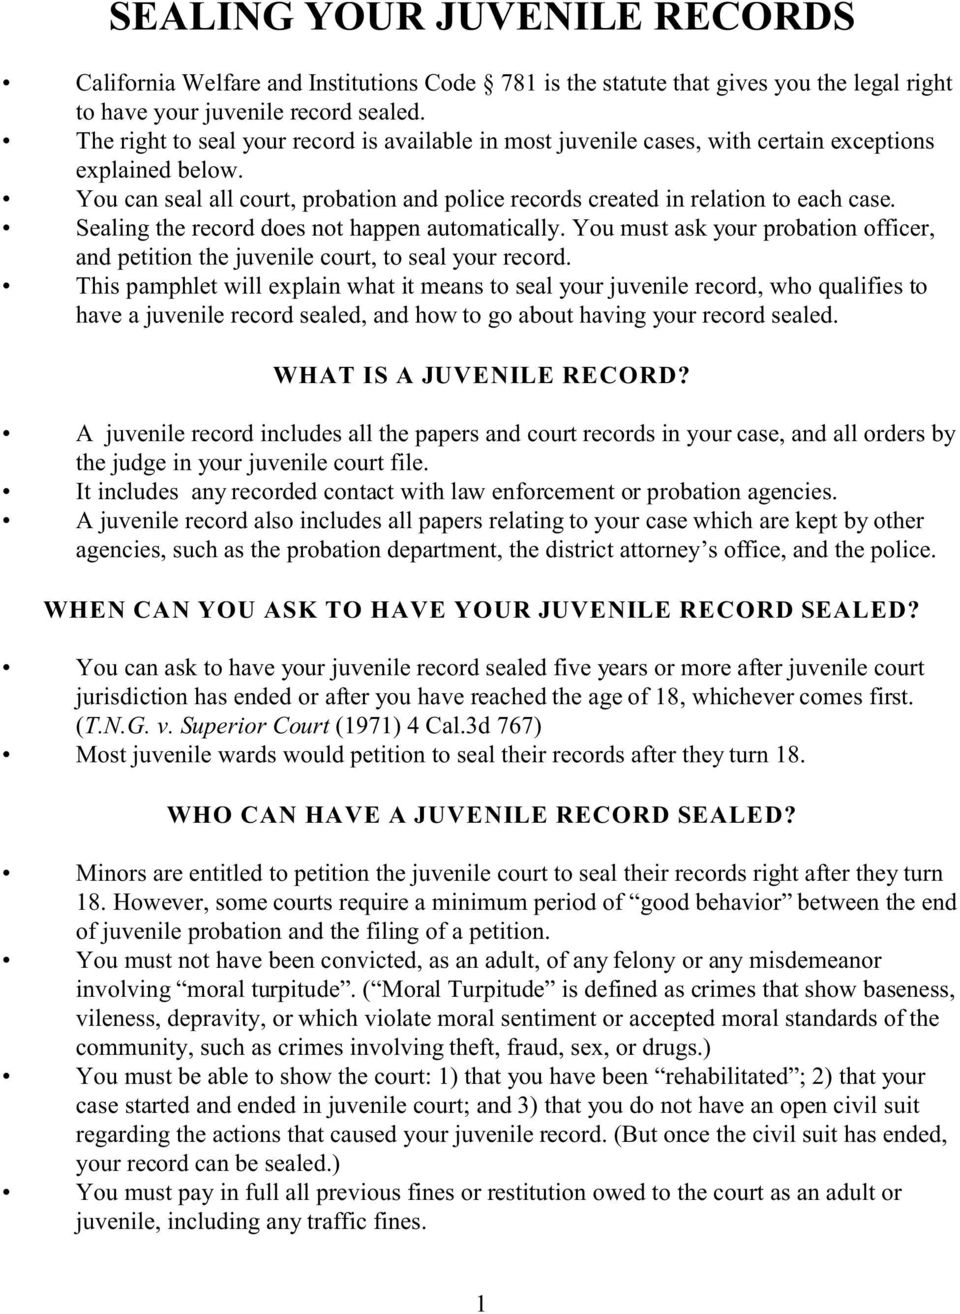 Sealing the record does not happen automatically. You must ask your probation officer, and petition the juvenile court, to seal your record.